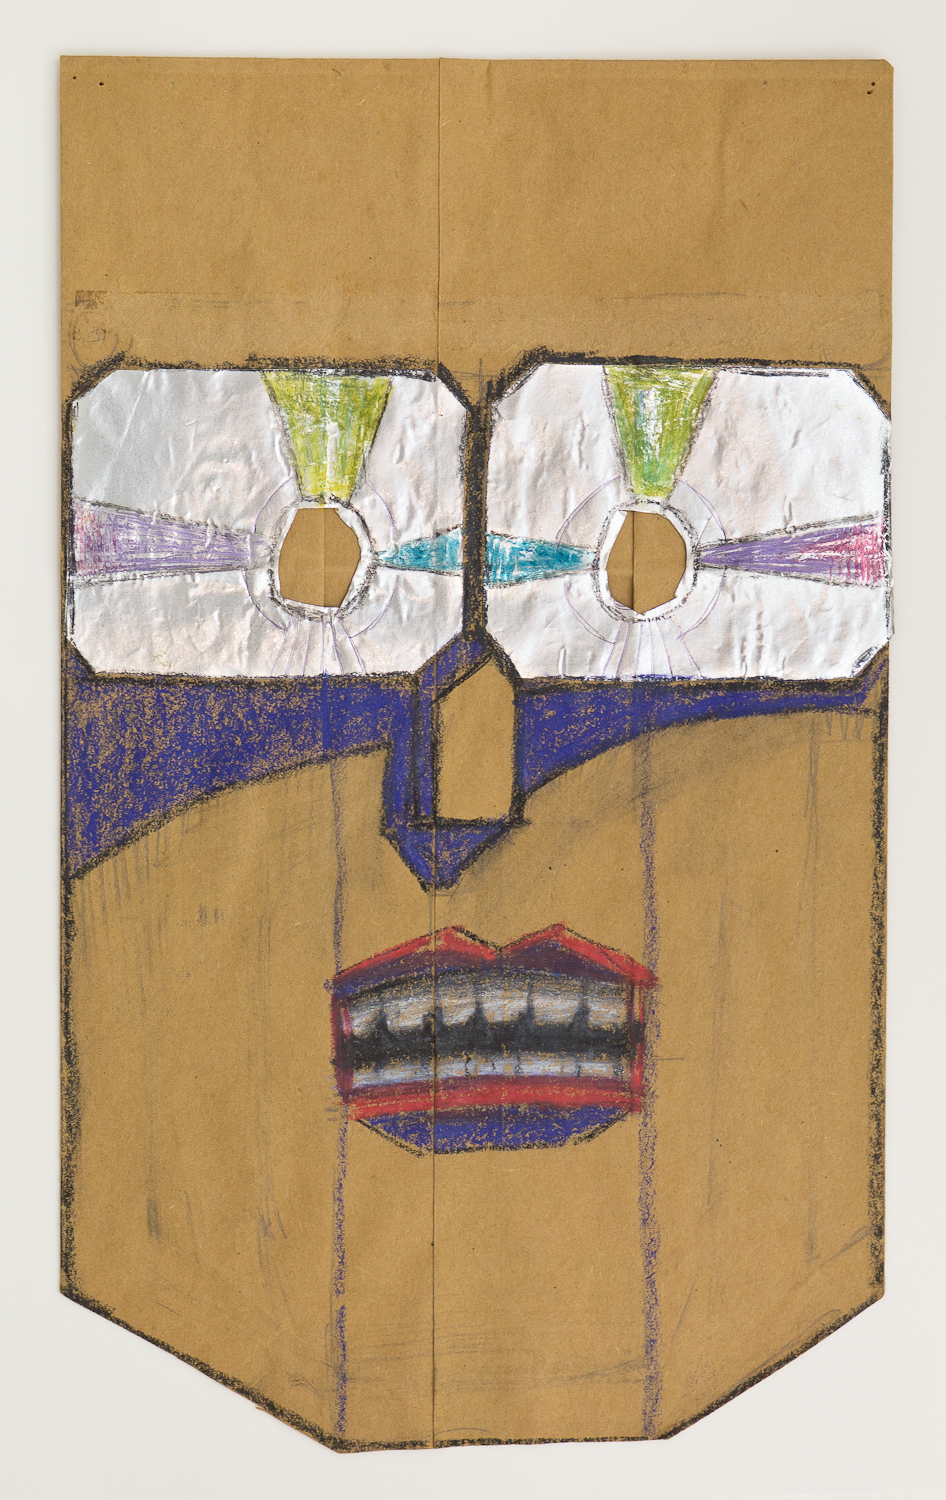 Saul Steinberg  (American, 1914-1999)  Untitled , 1959-62 Crayon, colored pencil, and pencil with erasures, with incised foil collage on cut brown paper bag 14 x 8 3/8 x 5 inches